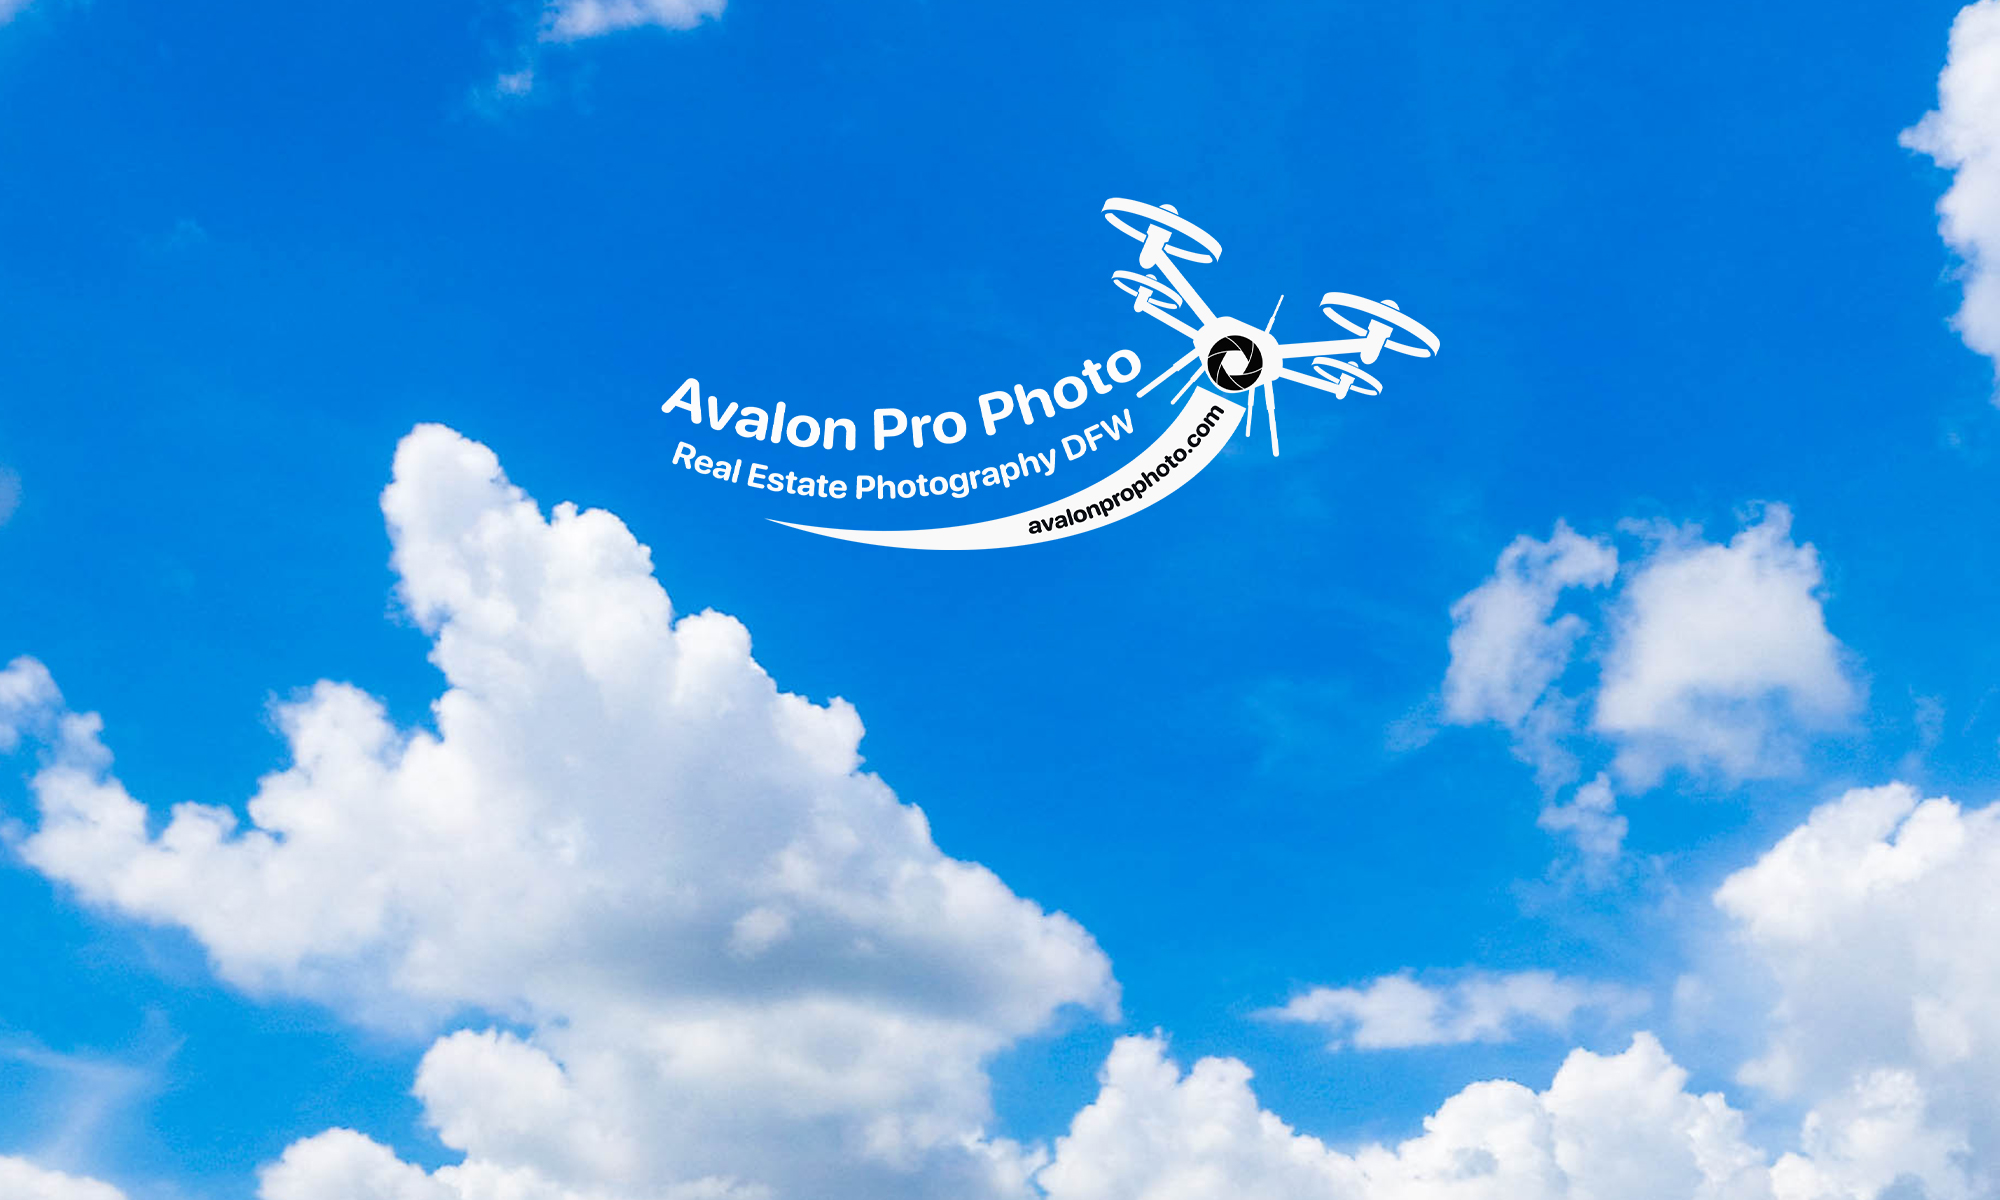 Avalon Pro Photo